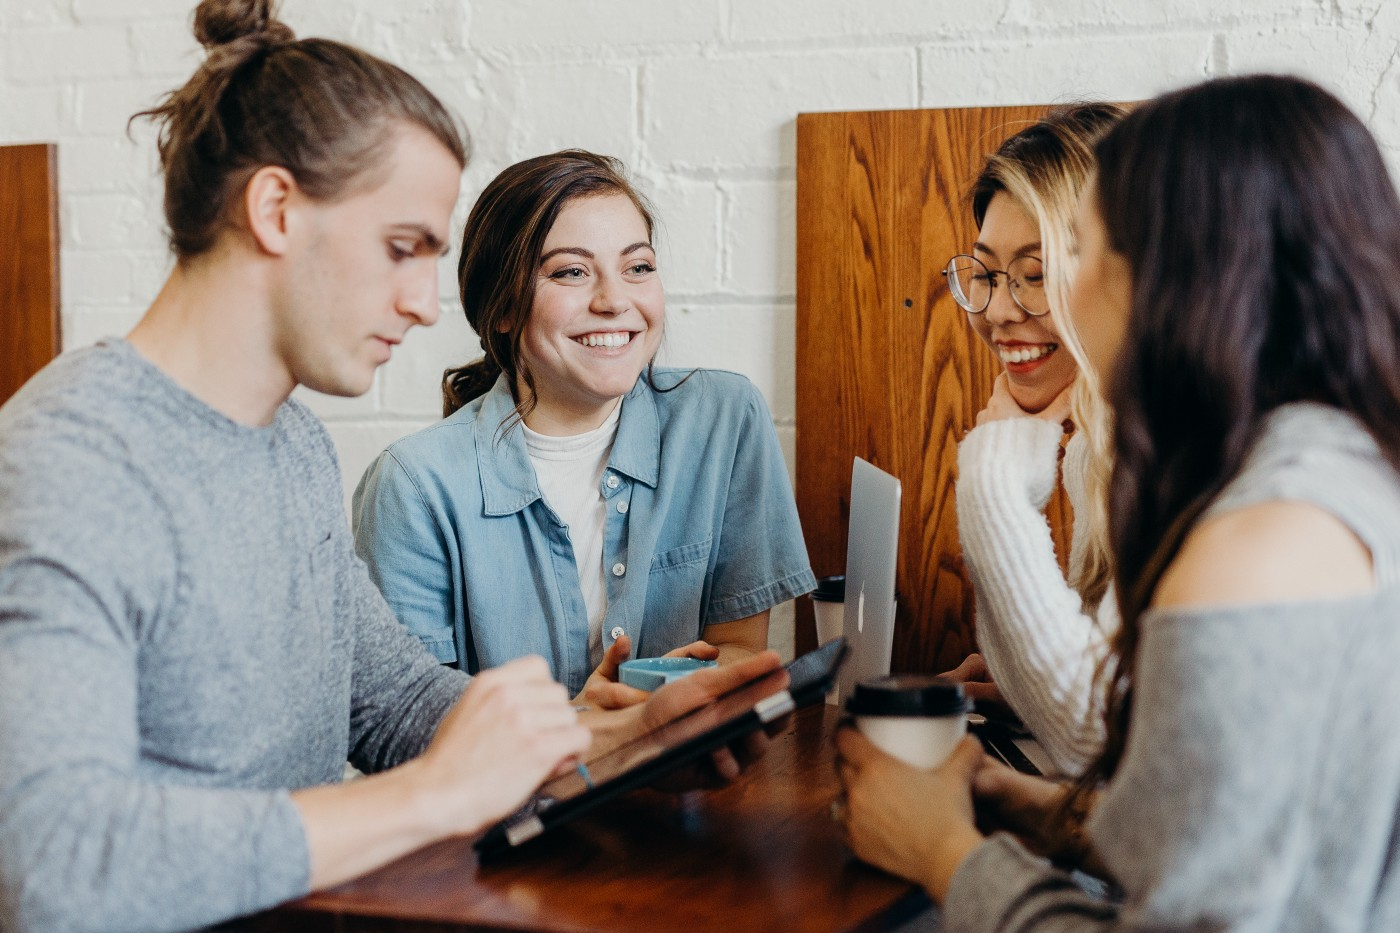 Let the Power of Networking Propel Your Business Success Never underestimate who you know, who knows you, and who can send the right business your way